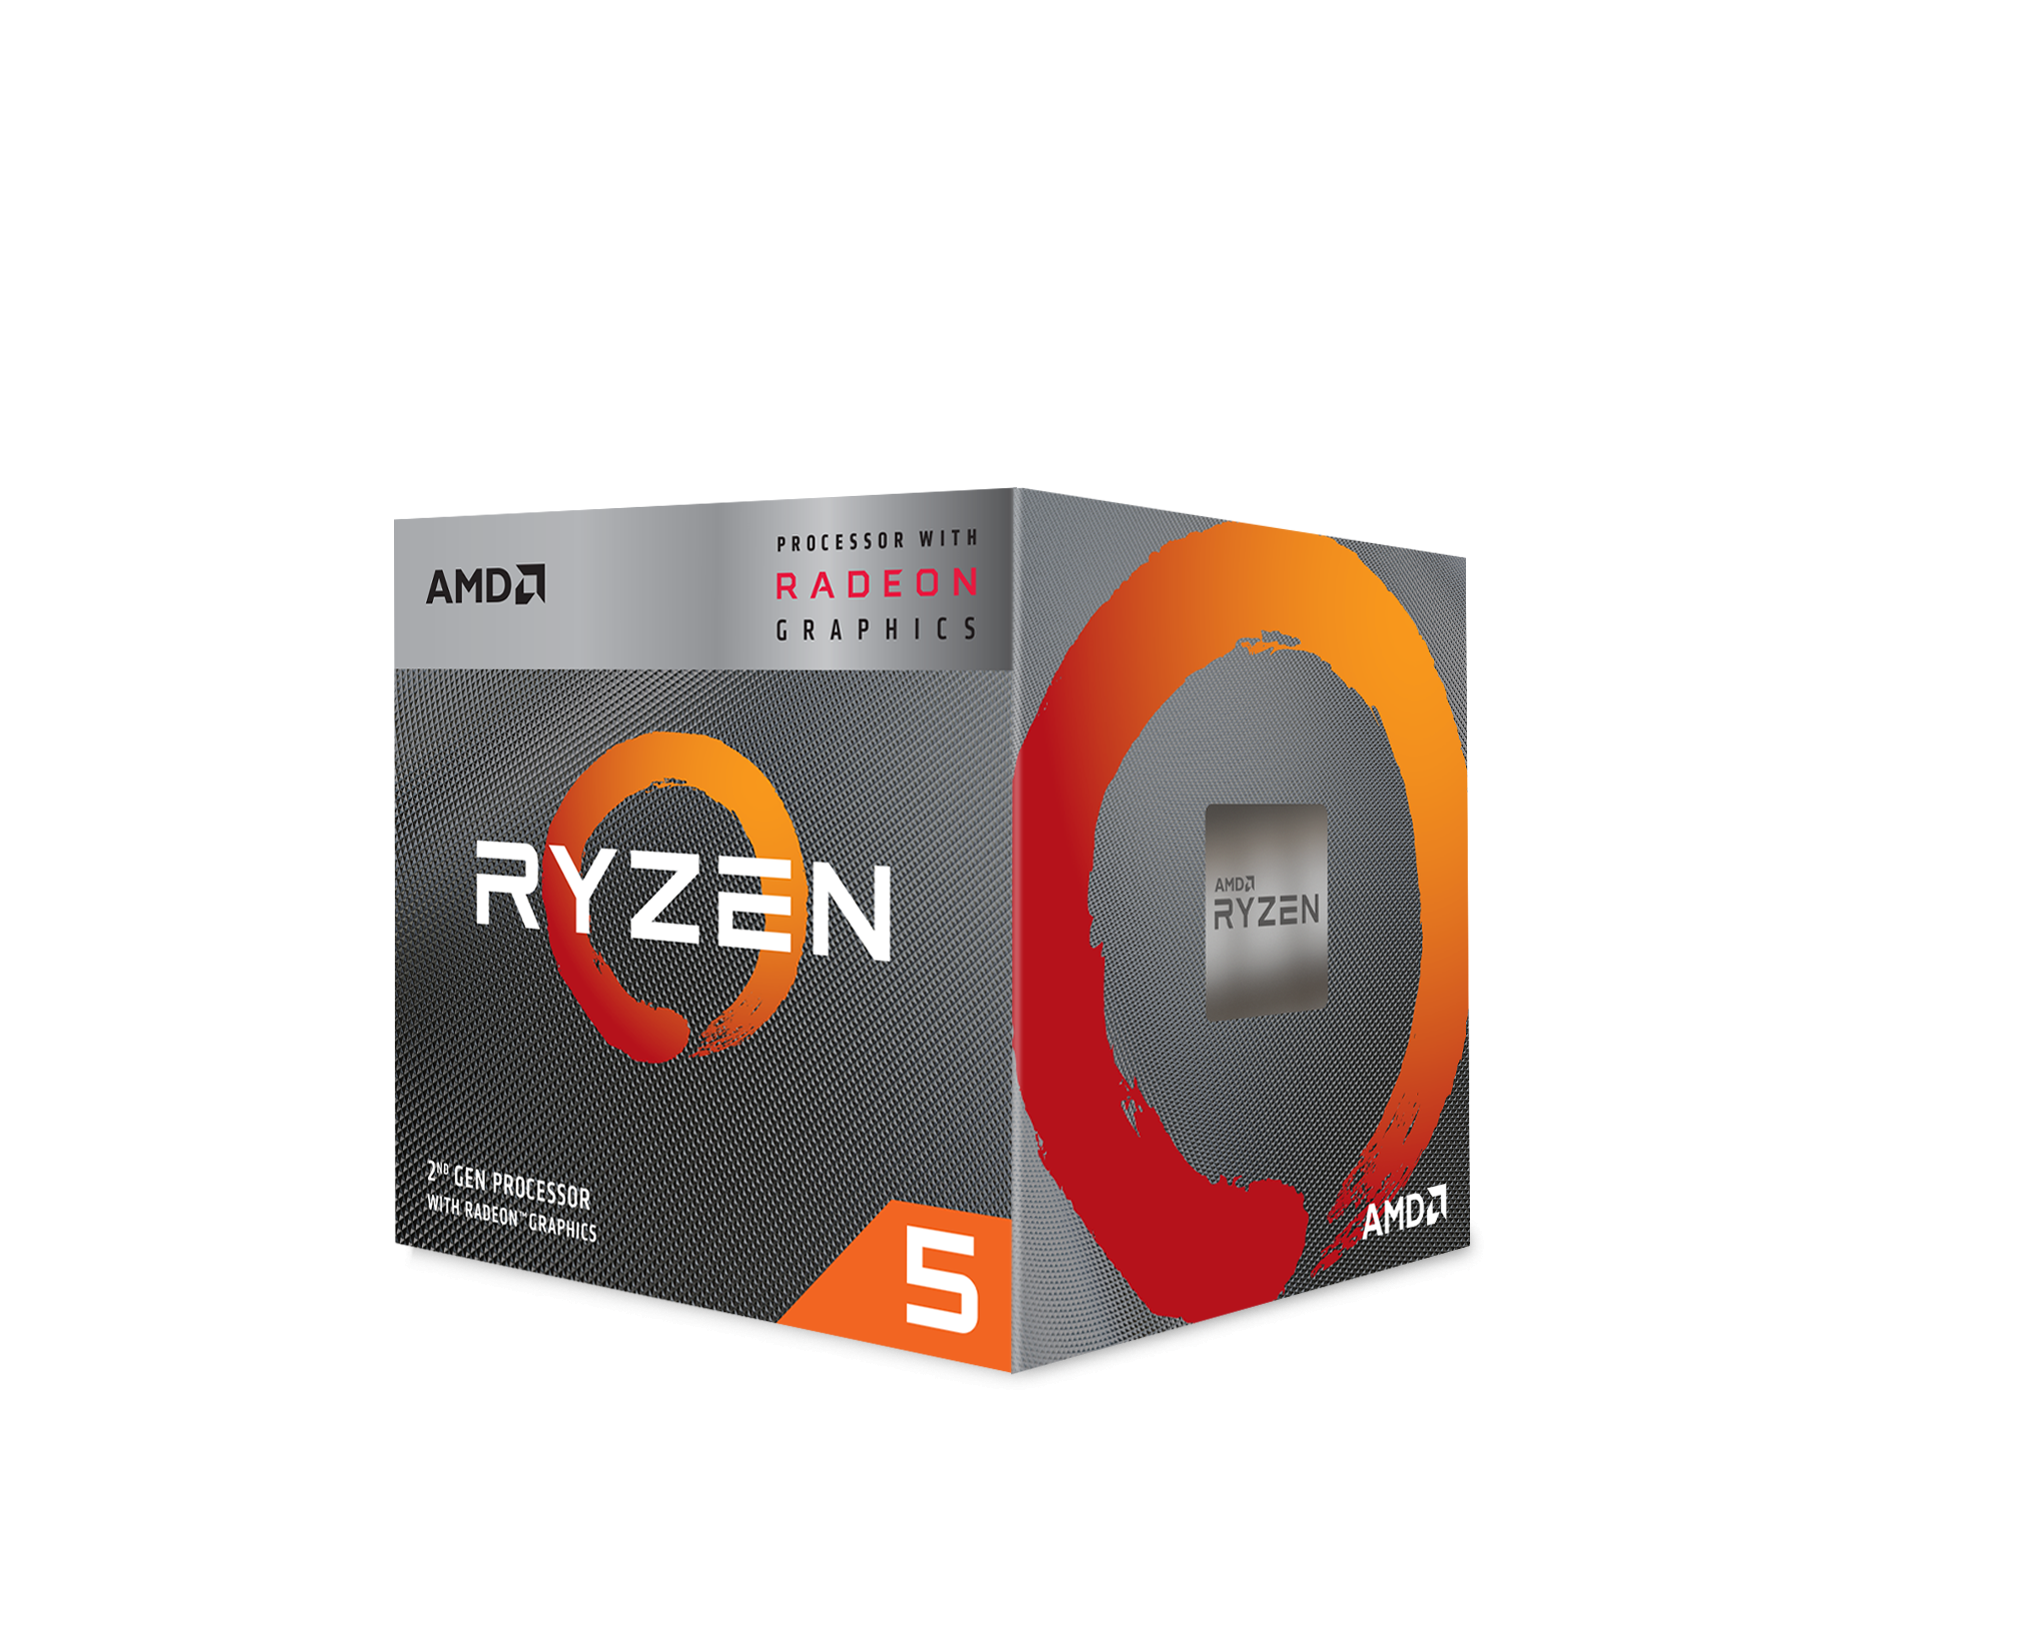 Процесор AMD RYZEN 5 3400G 4-Core 3.7 GHz (4.2 GHz Turbo) 6MB/65W/AM4/BOX-3